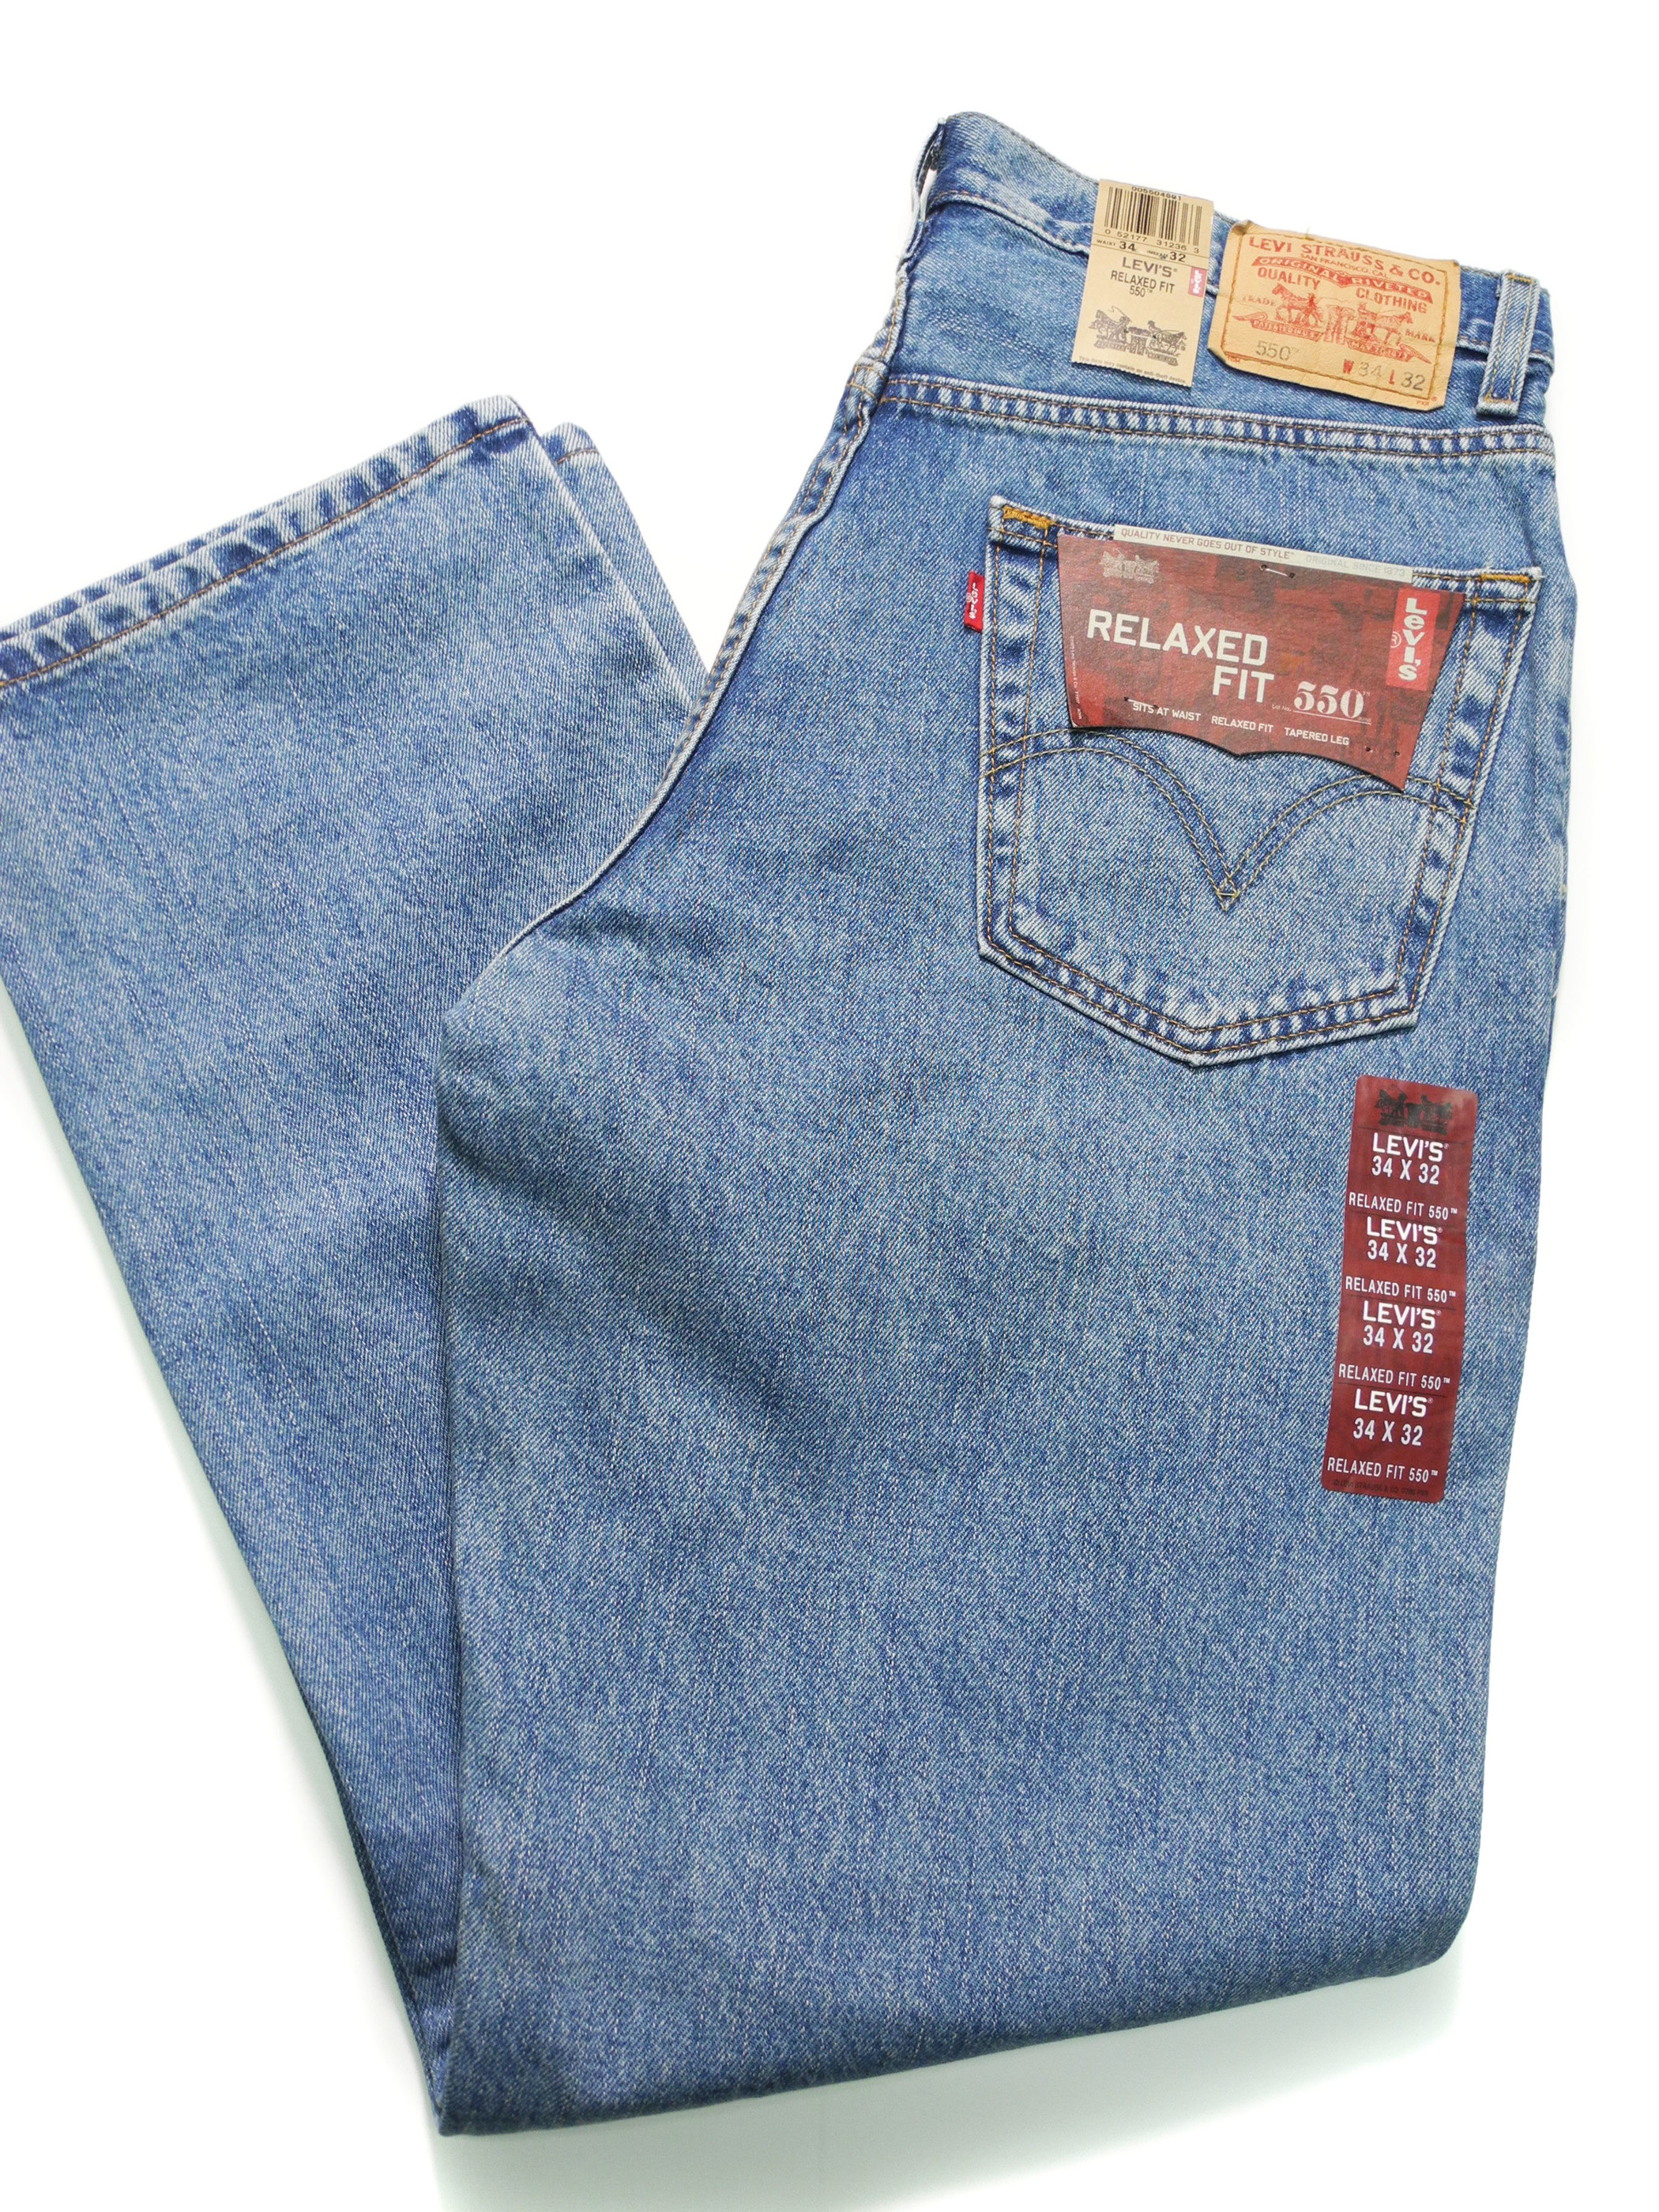 DEADSTOCK 550 RELAXED TAPERED LEG JEANS